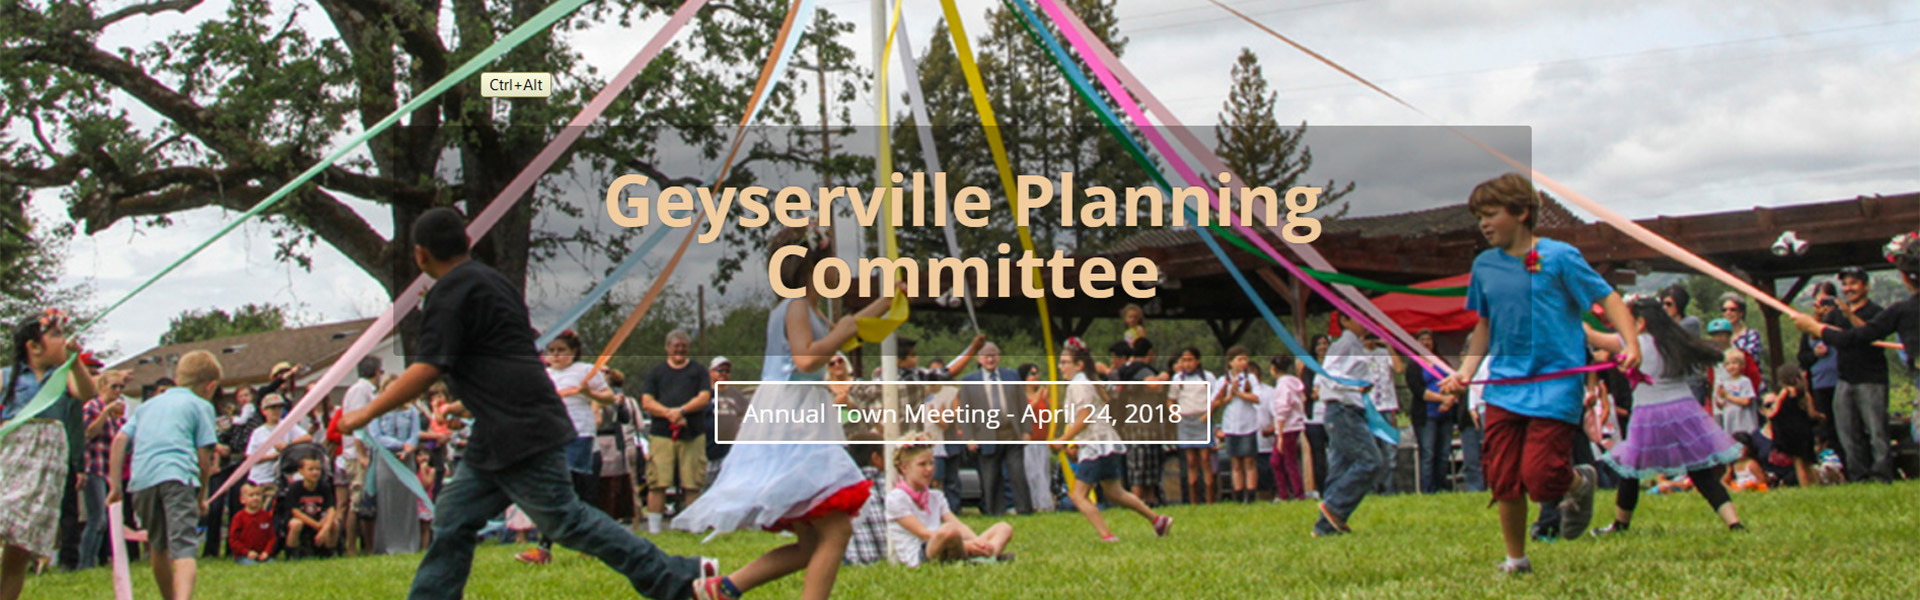 Geyserville Planning Committee